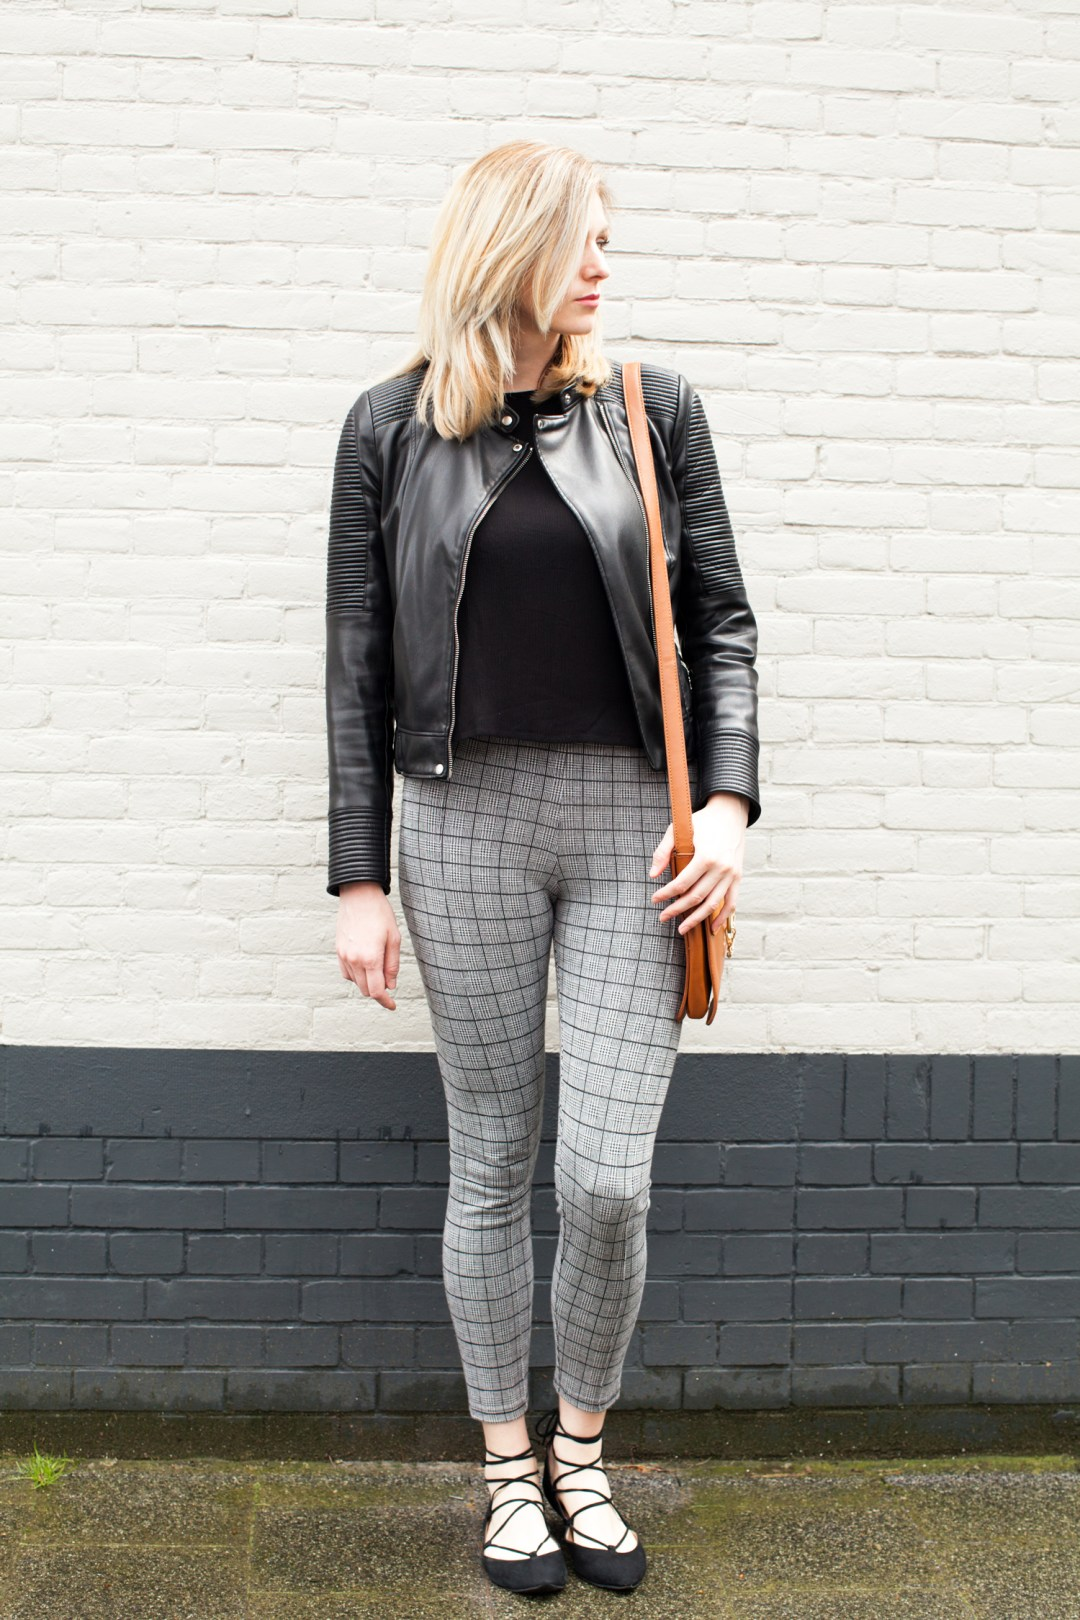 Black and white outfit. Open shoulder top + gingham pants + lace up flats